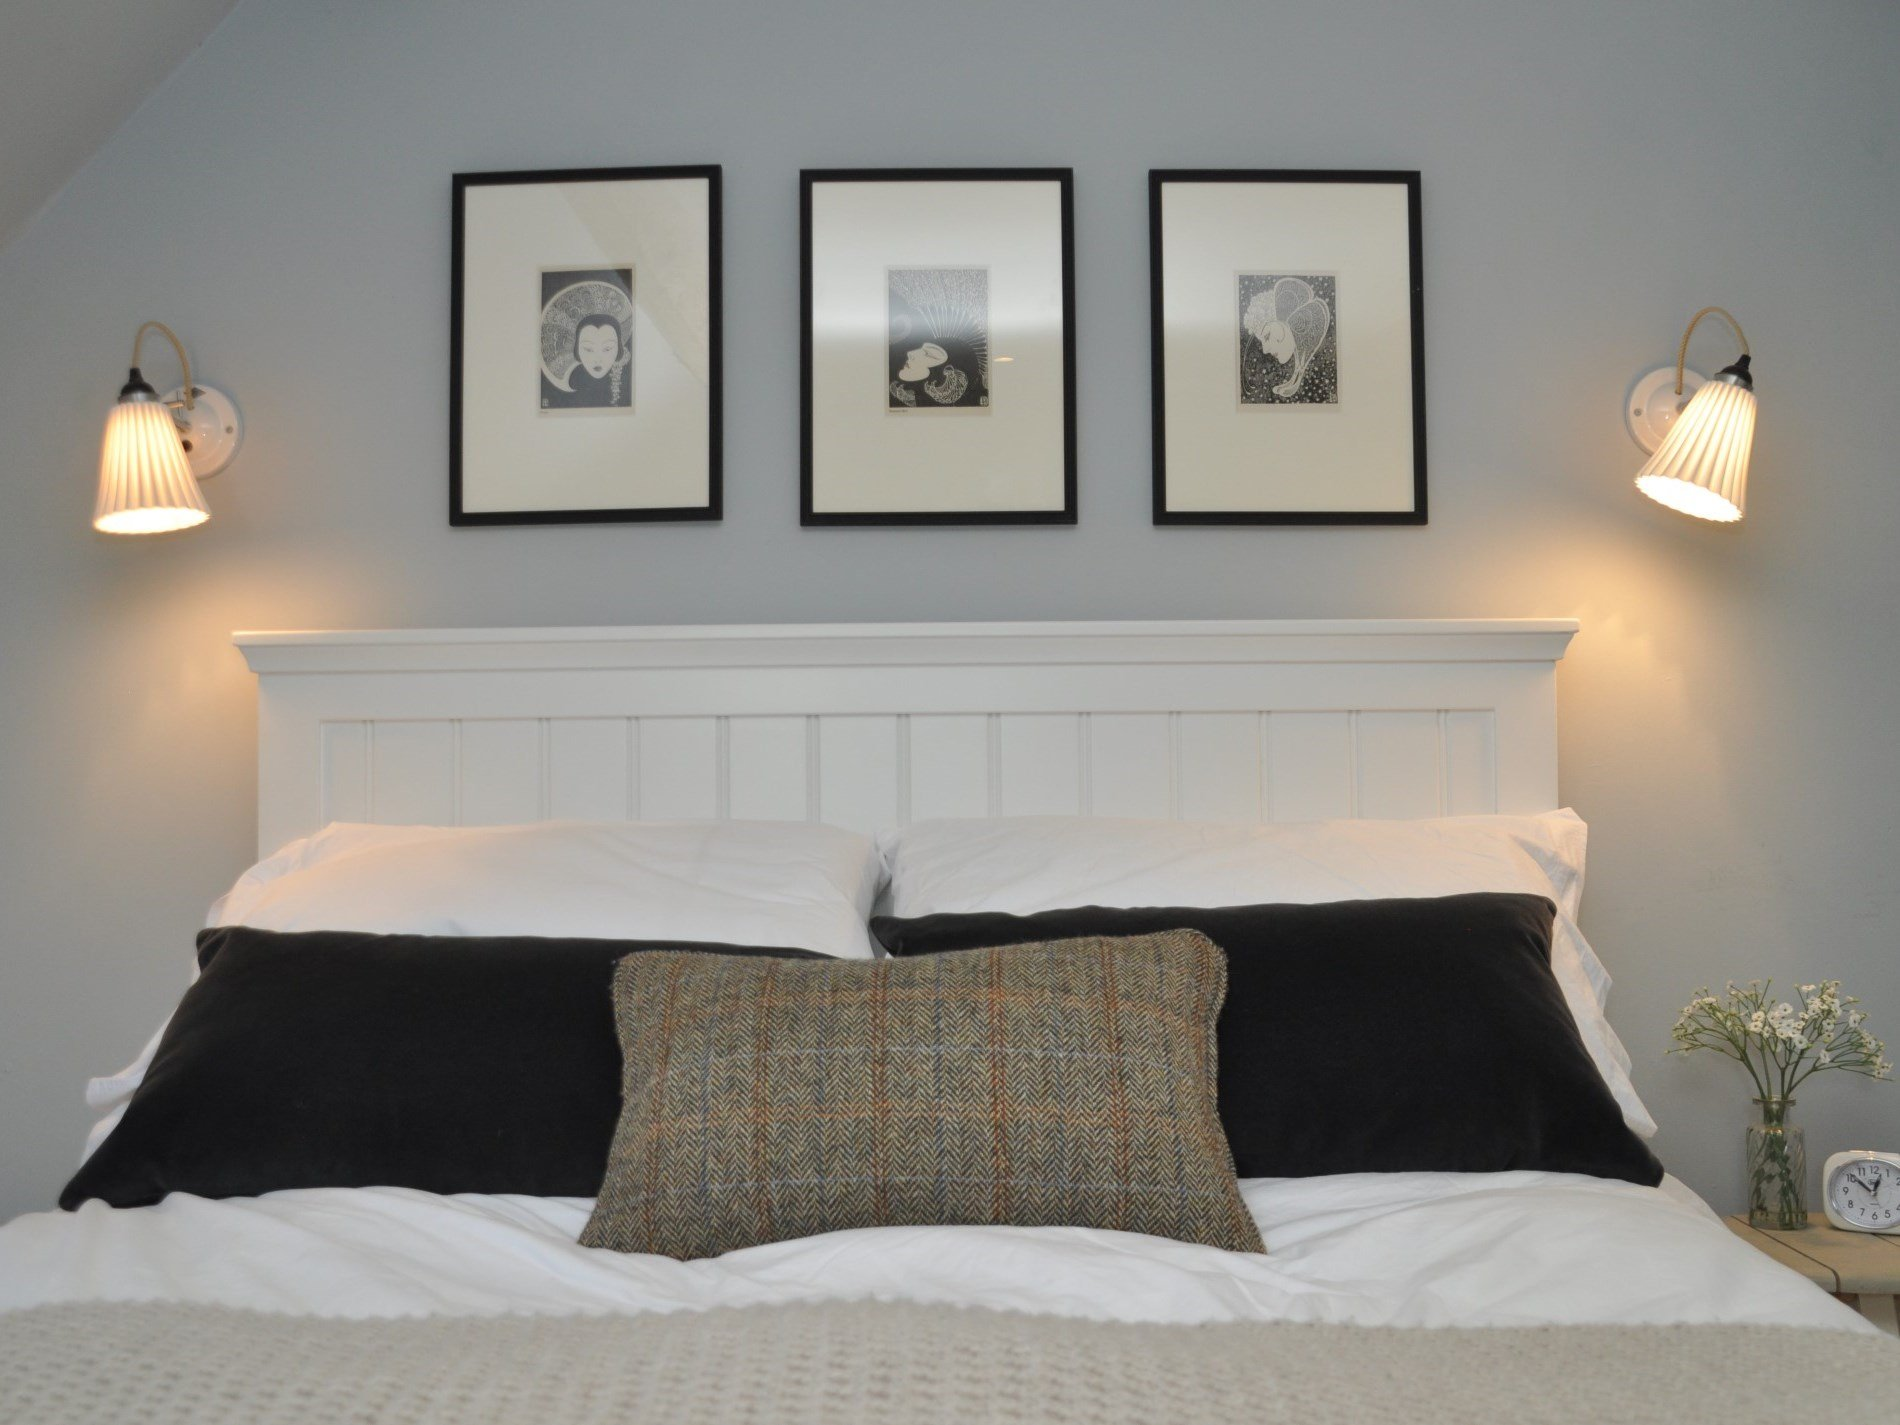 Beautiful bedlinen and classic artwork